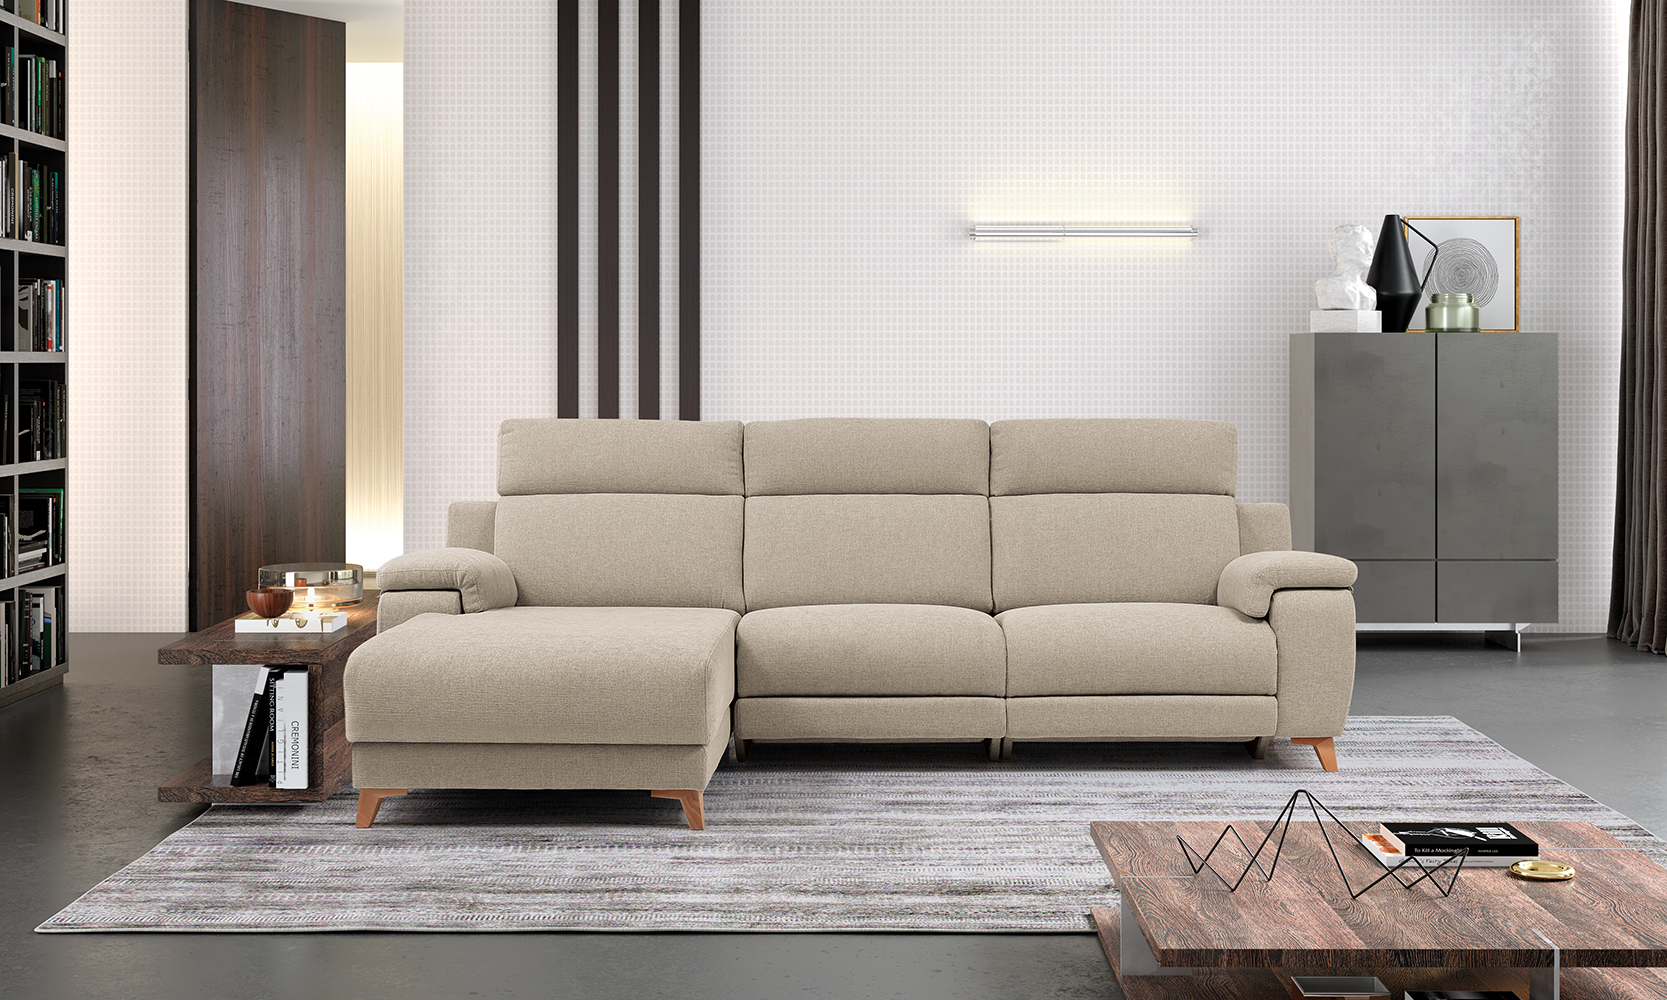 sofa-jazz-chaise-longue